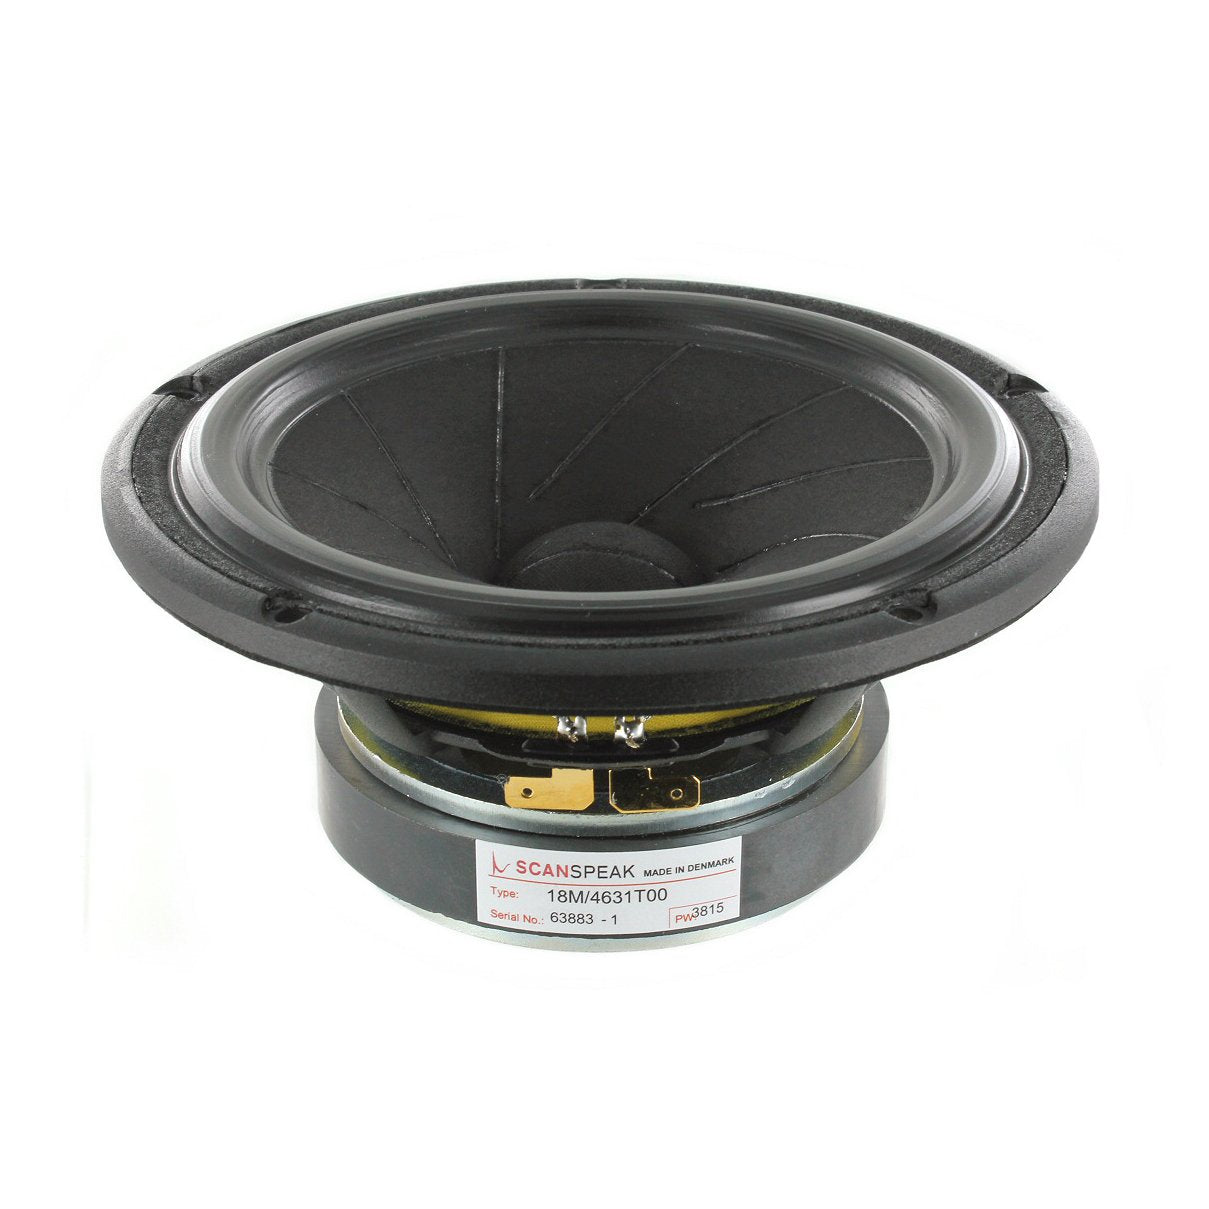 Scanspeak Revelator 18M/4631T00 Midrange - Willys-Hifi Ltd